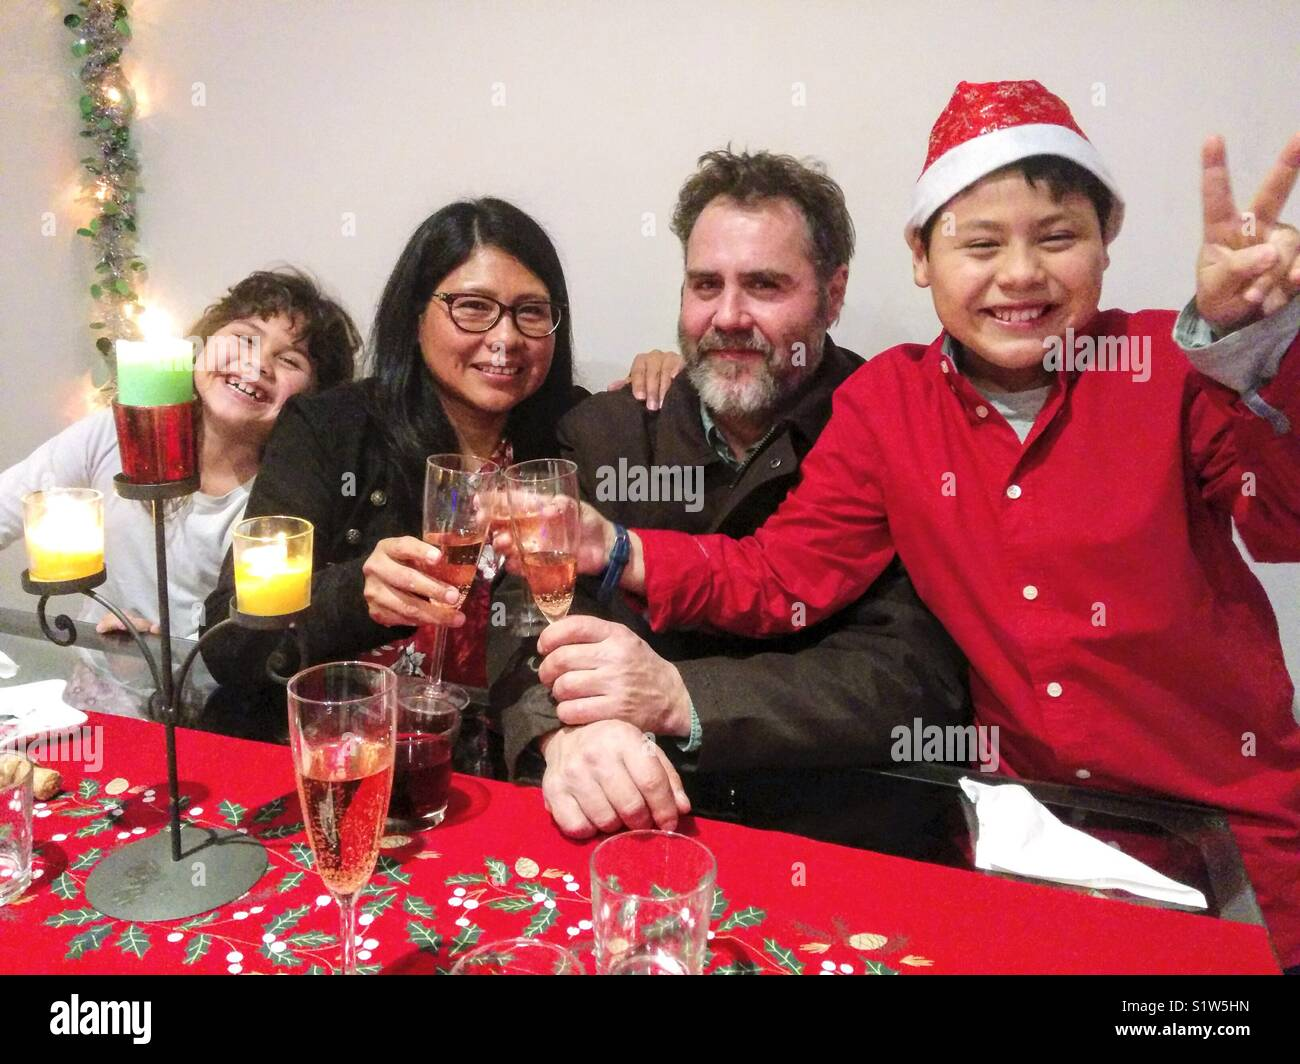 Interracial family celebrating Christmas. - Stock Image